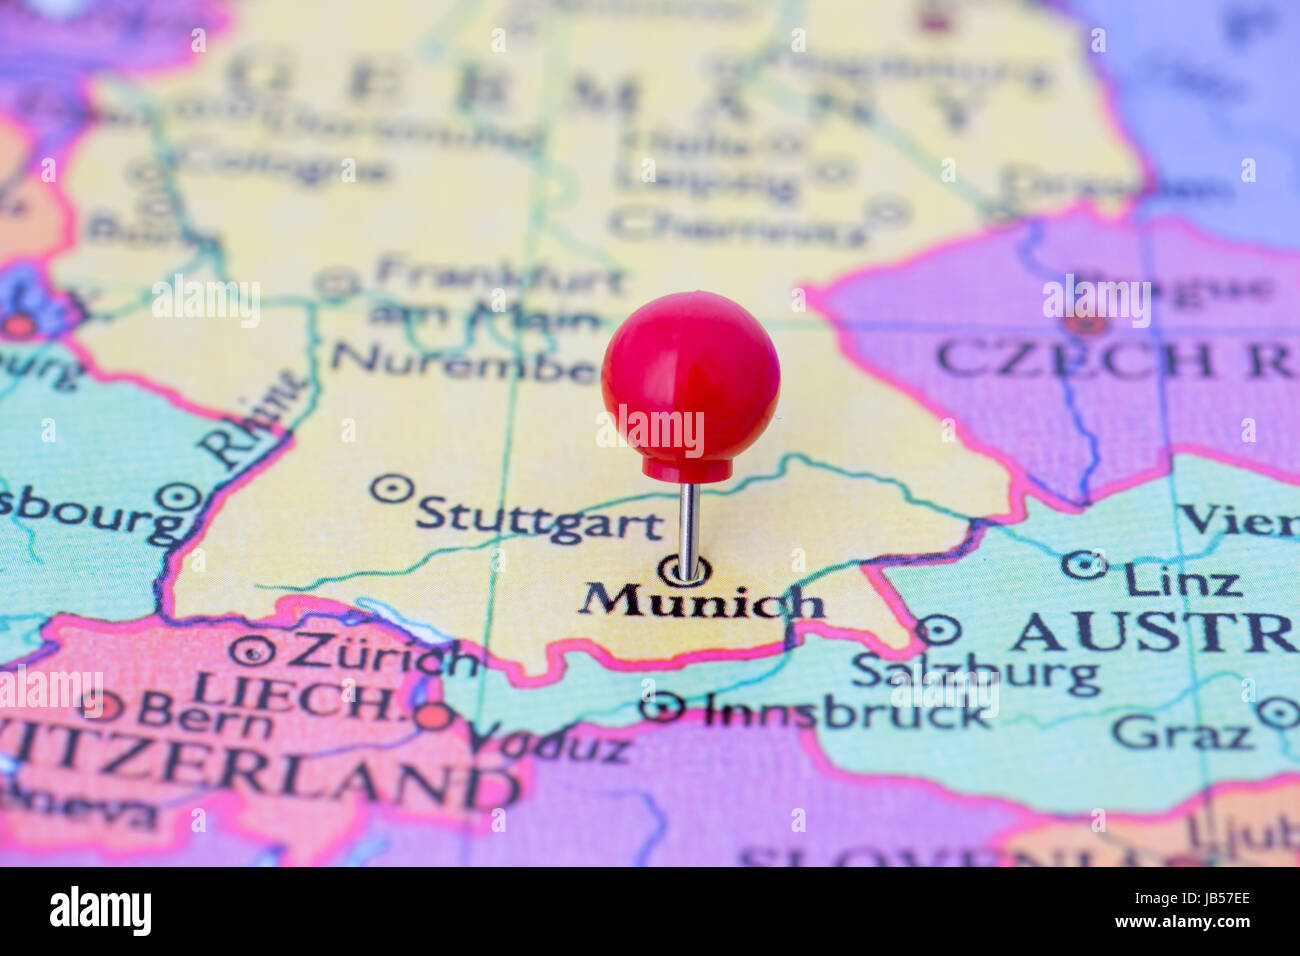 Munich Map Of Europe Round red thumb tack pinched through city of Munich on Germany map